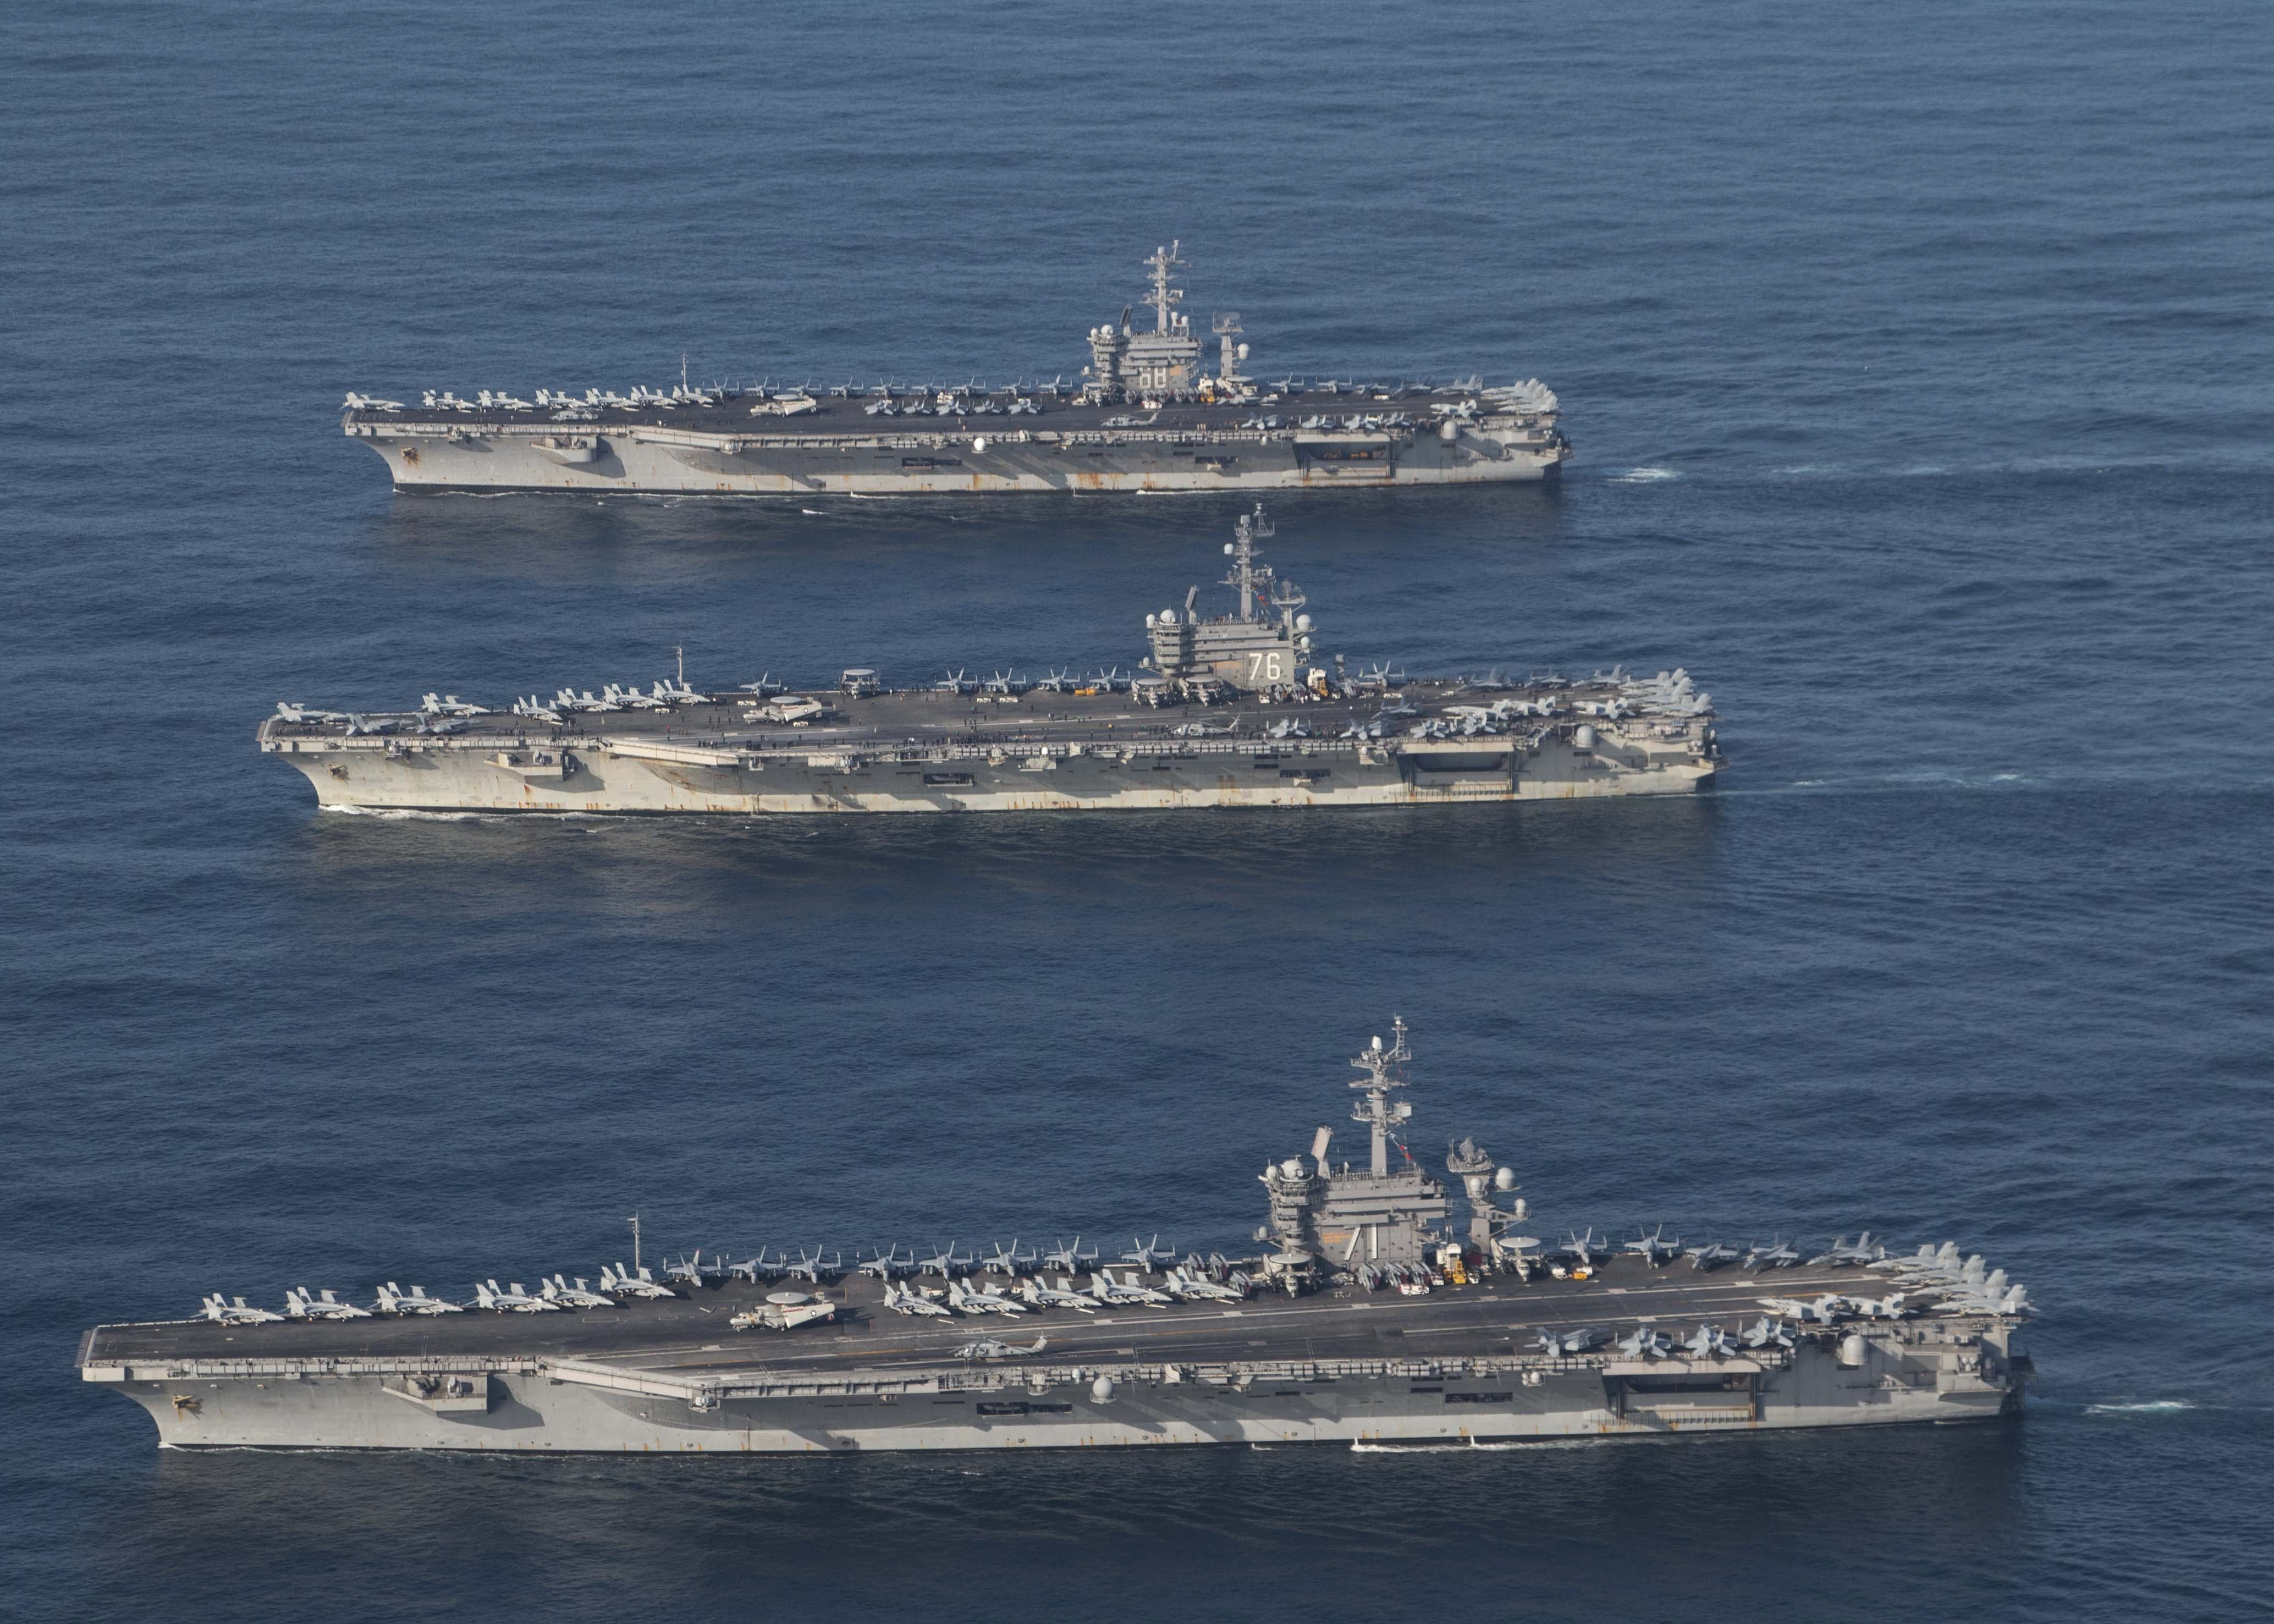 The aircraft carriers USS Ronald Reagan (CVN 76), USS Theodore Roosevelt (CVN 71) and USS Nimitz (CVN 68) and their strike groups conduct operations in the Pacific. courtesy U.S. Navy.